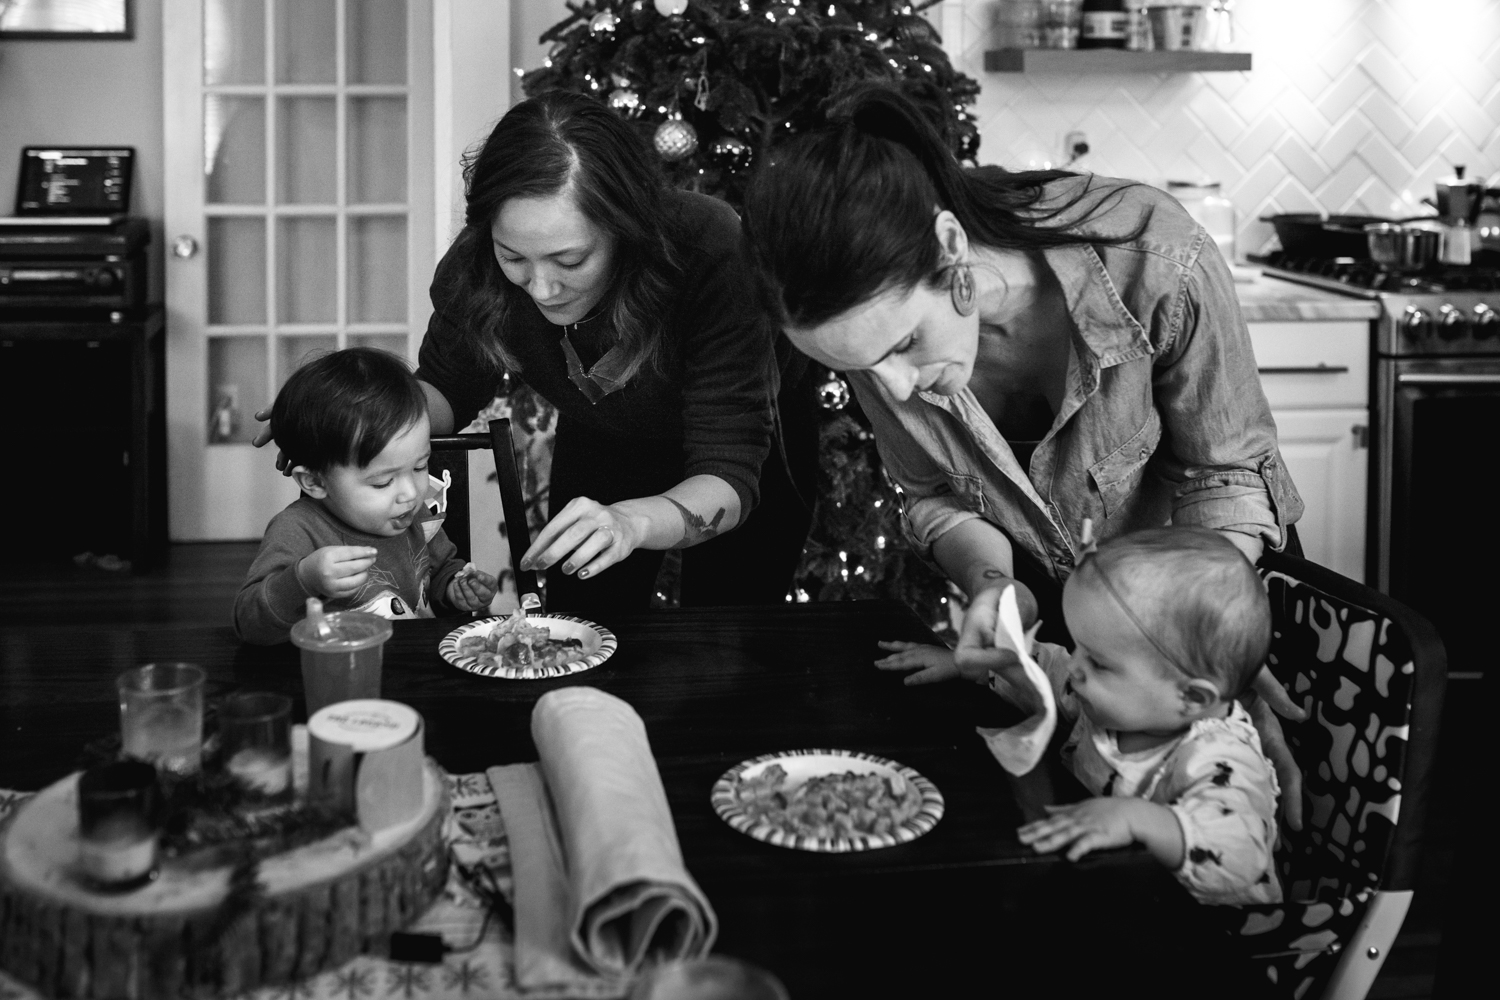 mothers feeding their babies from family documentary photography session in atlanta